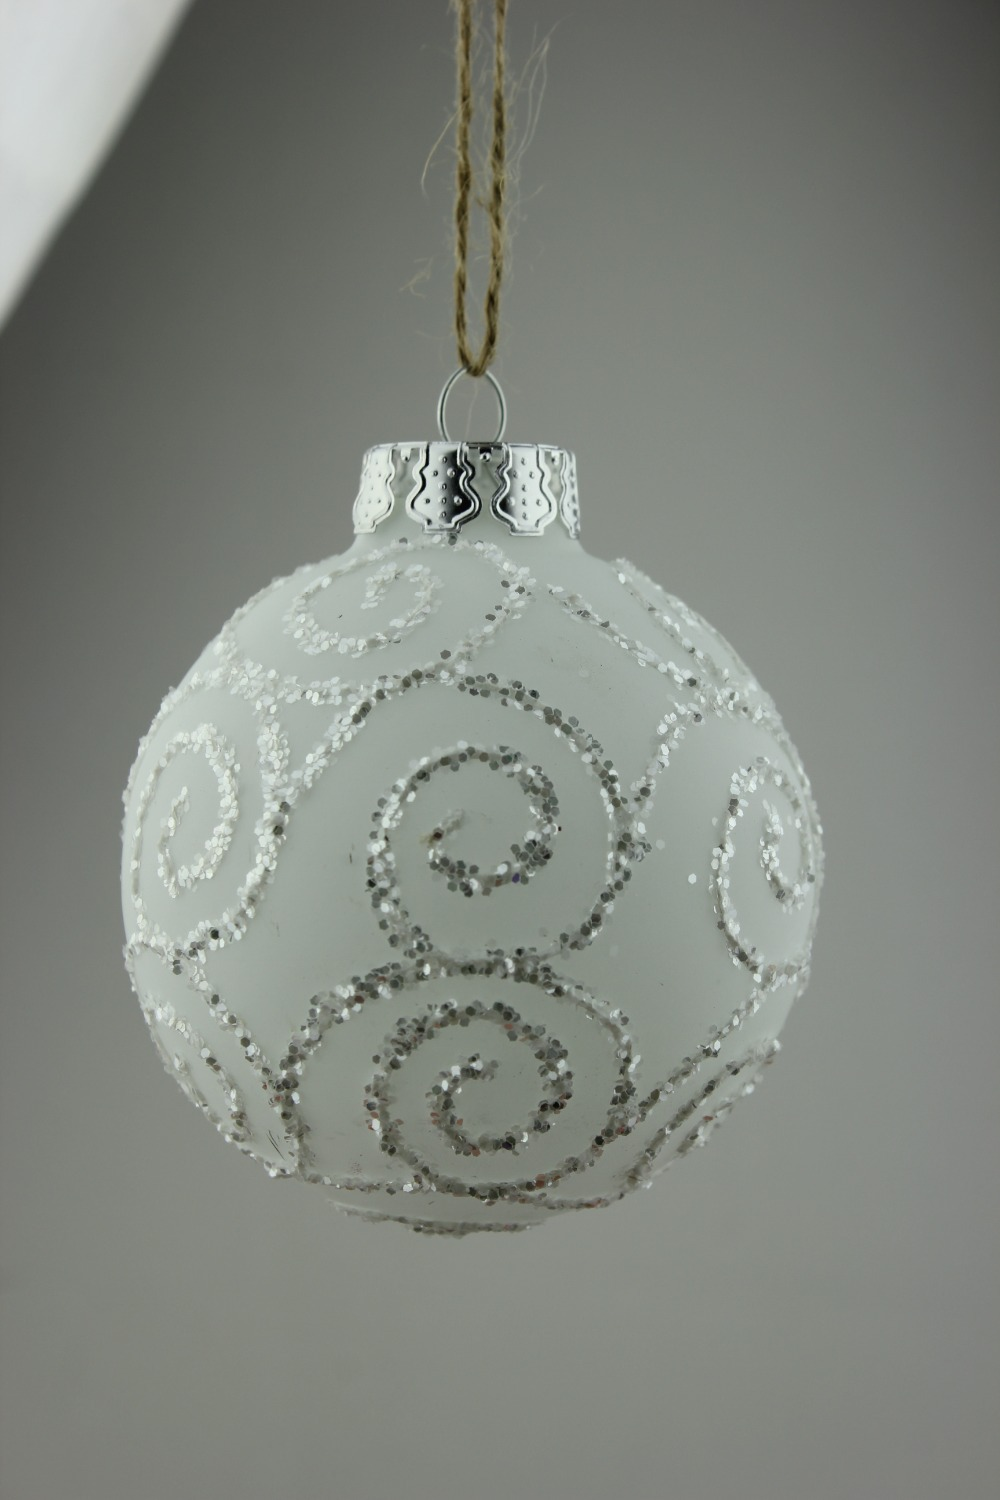 Frosted christmas ornaments - Frosted White Glass Balls Christmas Ornaments With Silver Coulds Lines Design Xmas Pendants Event Party Dia8cm From Reliable Christmas Ornaments